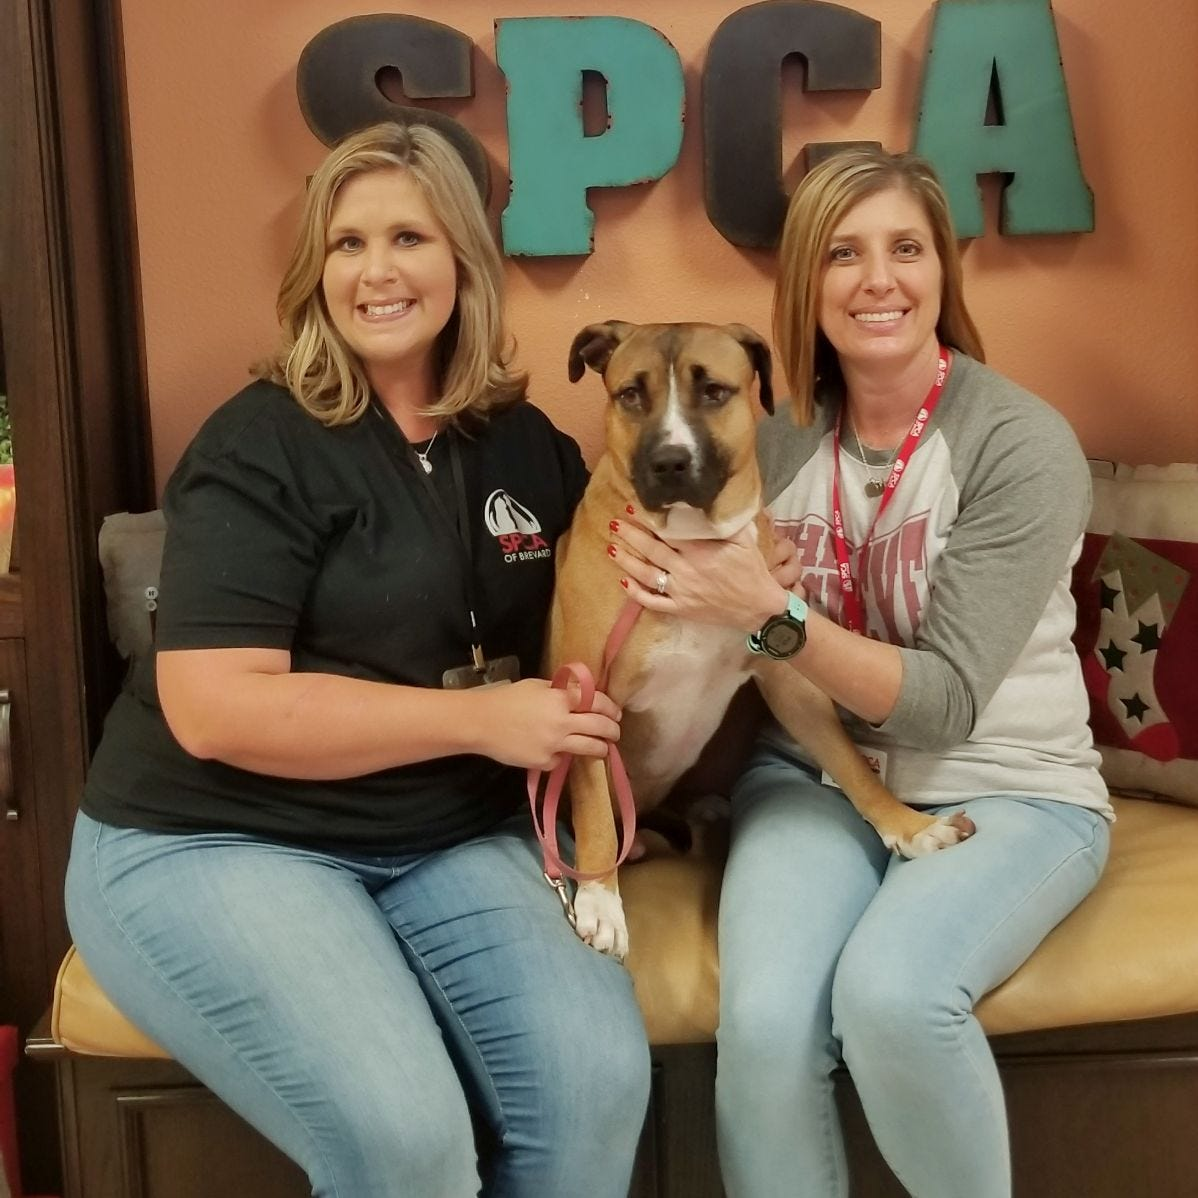 SPCA of Brevard: On a mission to save animals as it nears its 40th anniversary